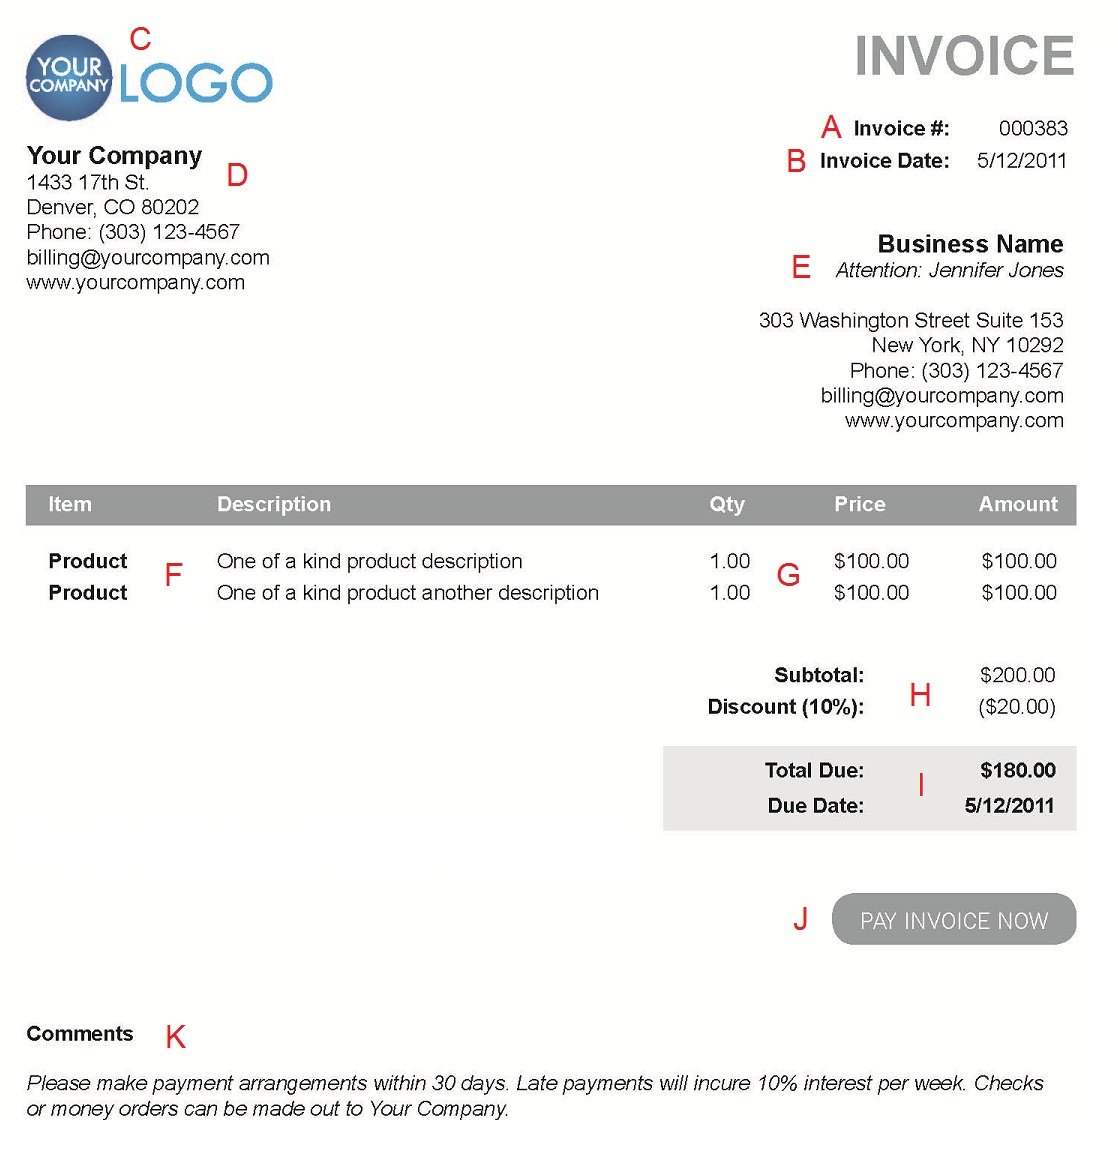 Patriotexpressus  Gorgeous The  Different Sections Of An Electronic Payment Invoice With Licious A  With Captivating How To Send Invoice On Paypal Also Adp Open Invoice Login In Addition Estimates And Invoices And How To Send An Invoice On Paypal As Well As Proforma Invoice Template Additionally Invoice Template Word Doc From Paysimplecom With Patriotexpressus  Licious The  Different Sections Of An Electronic Payment Invoice With Captivating A  And Gorgeous How To Send Invoice On Paypal Also Adp Open Invoice Login In Addition Estimates And Invoices From Paysimplecom